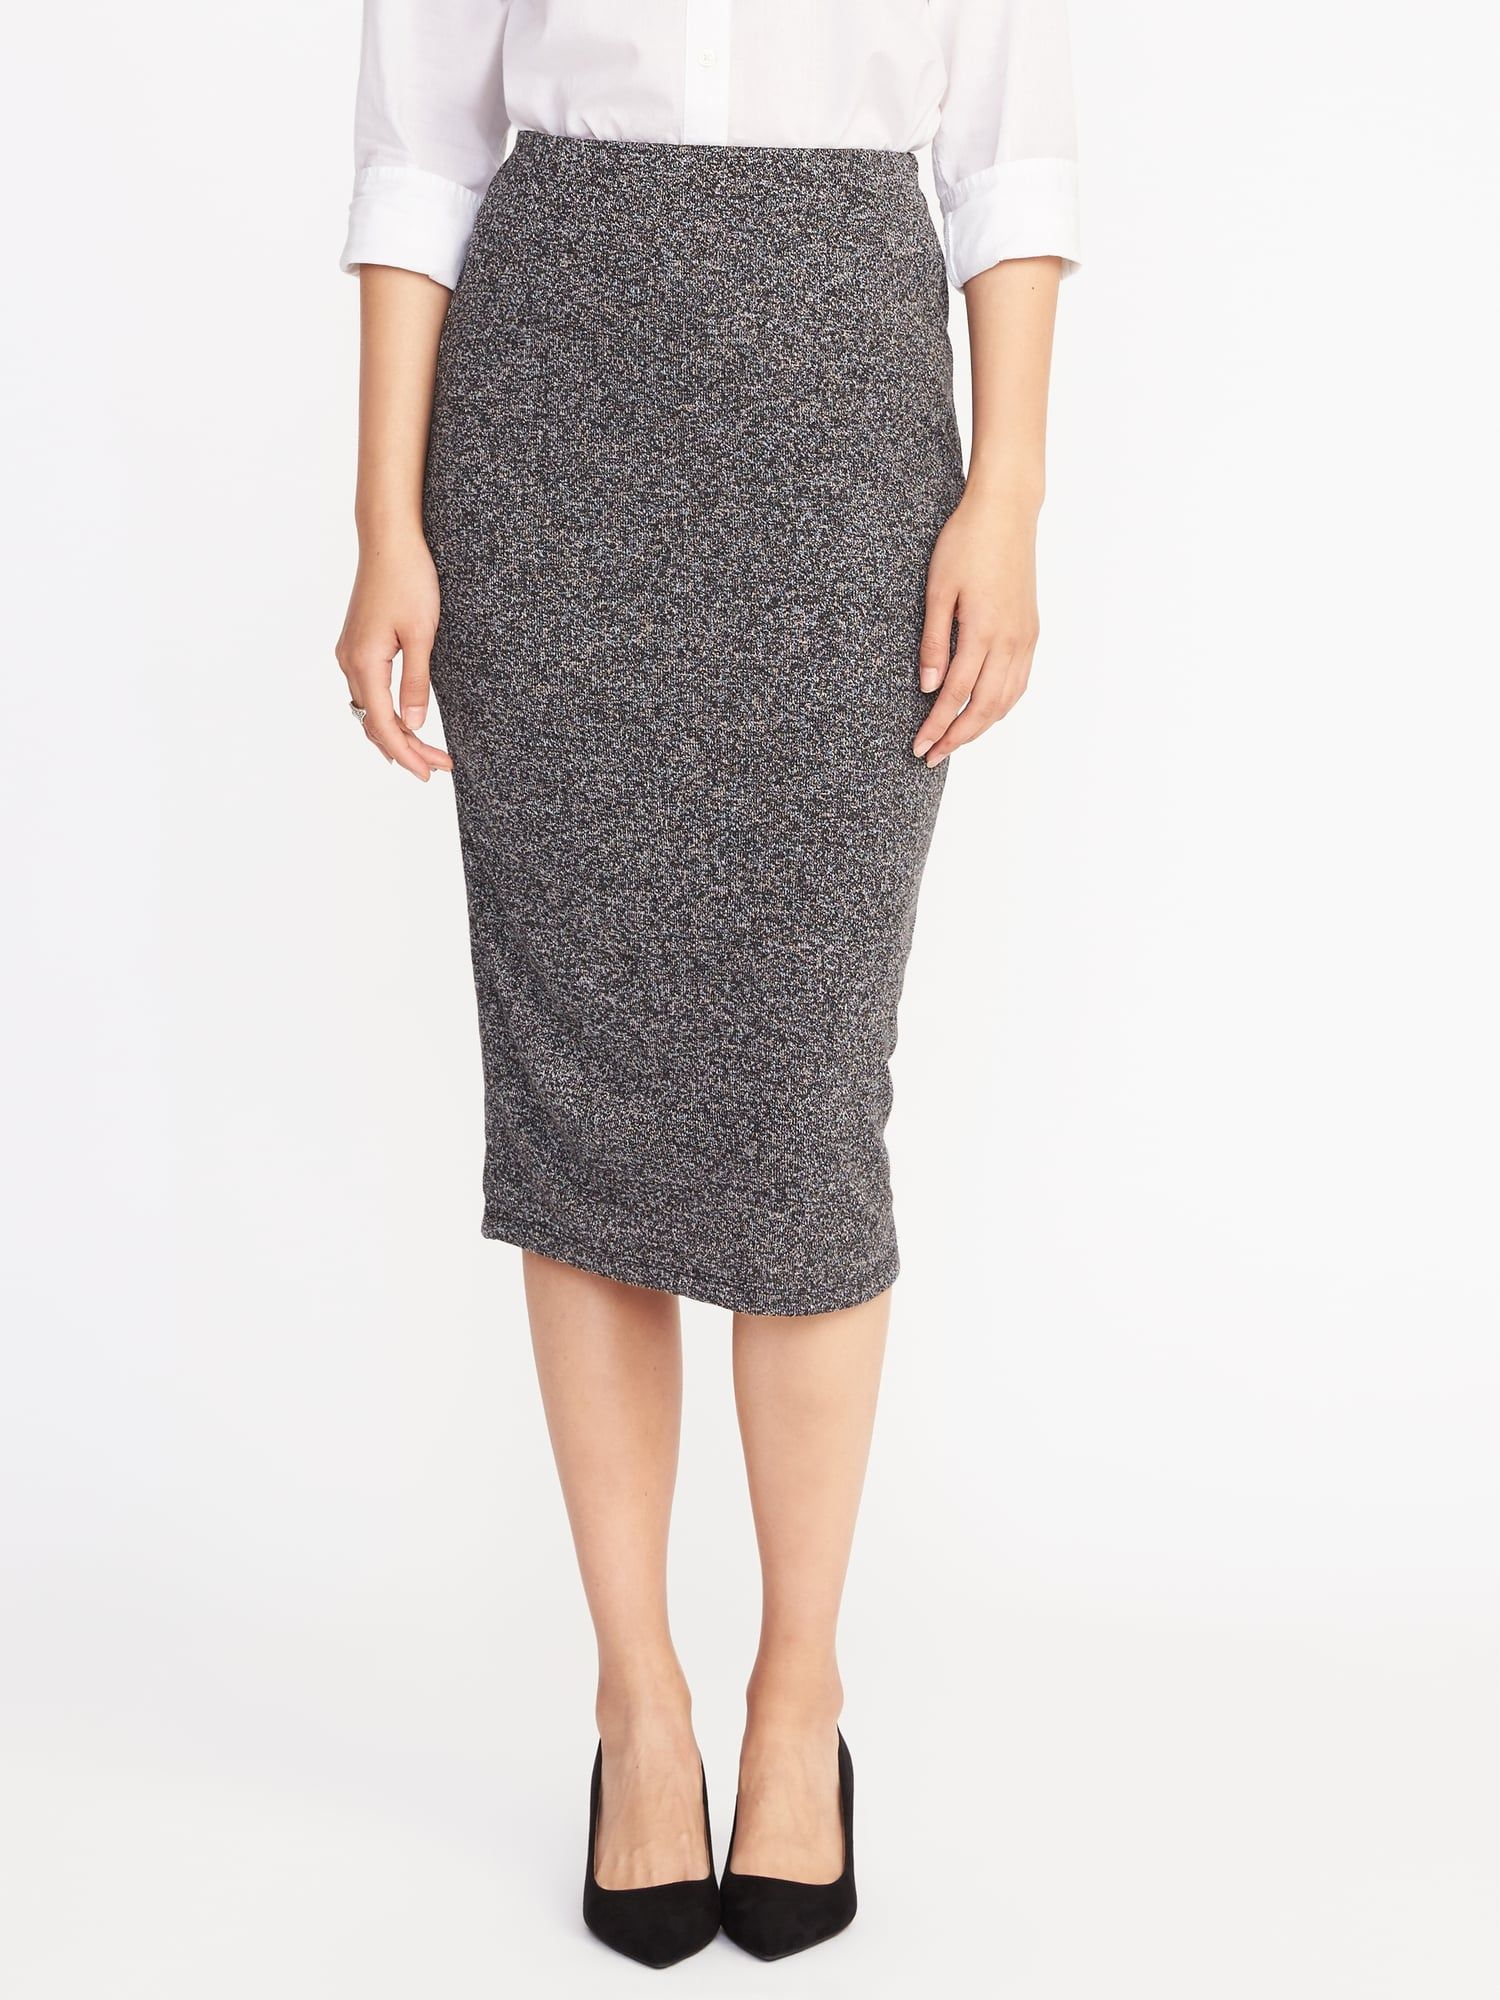 How to jersey a wear knit skirt